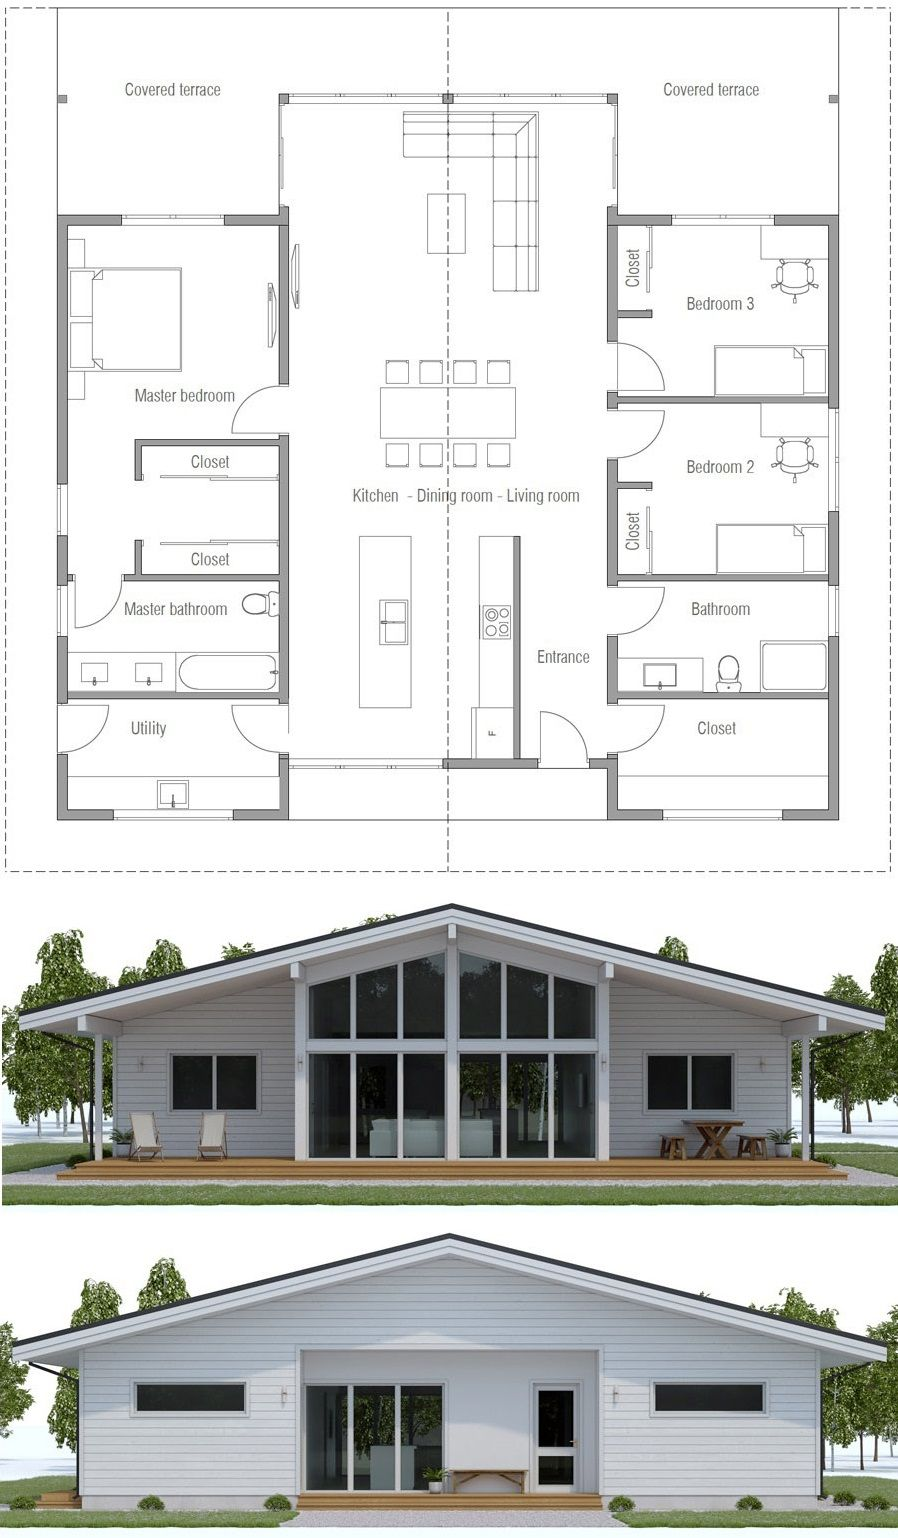 Floor Plan Ch568 Floor Plans Container House Plans Contemporary House Plans